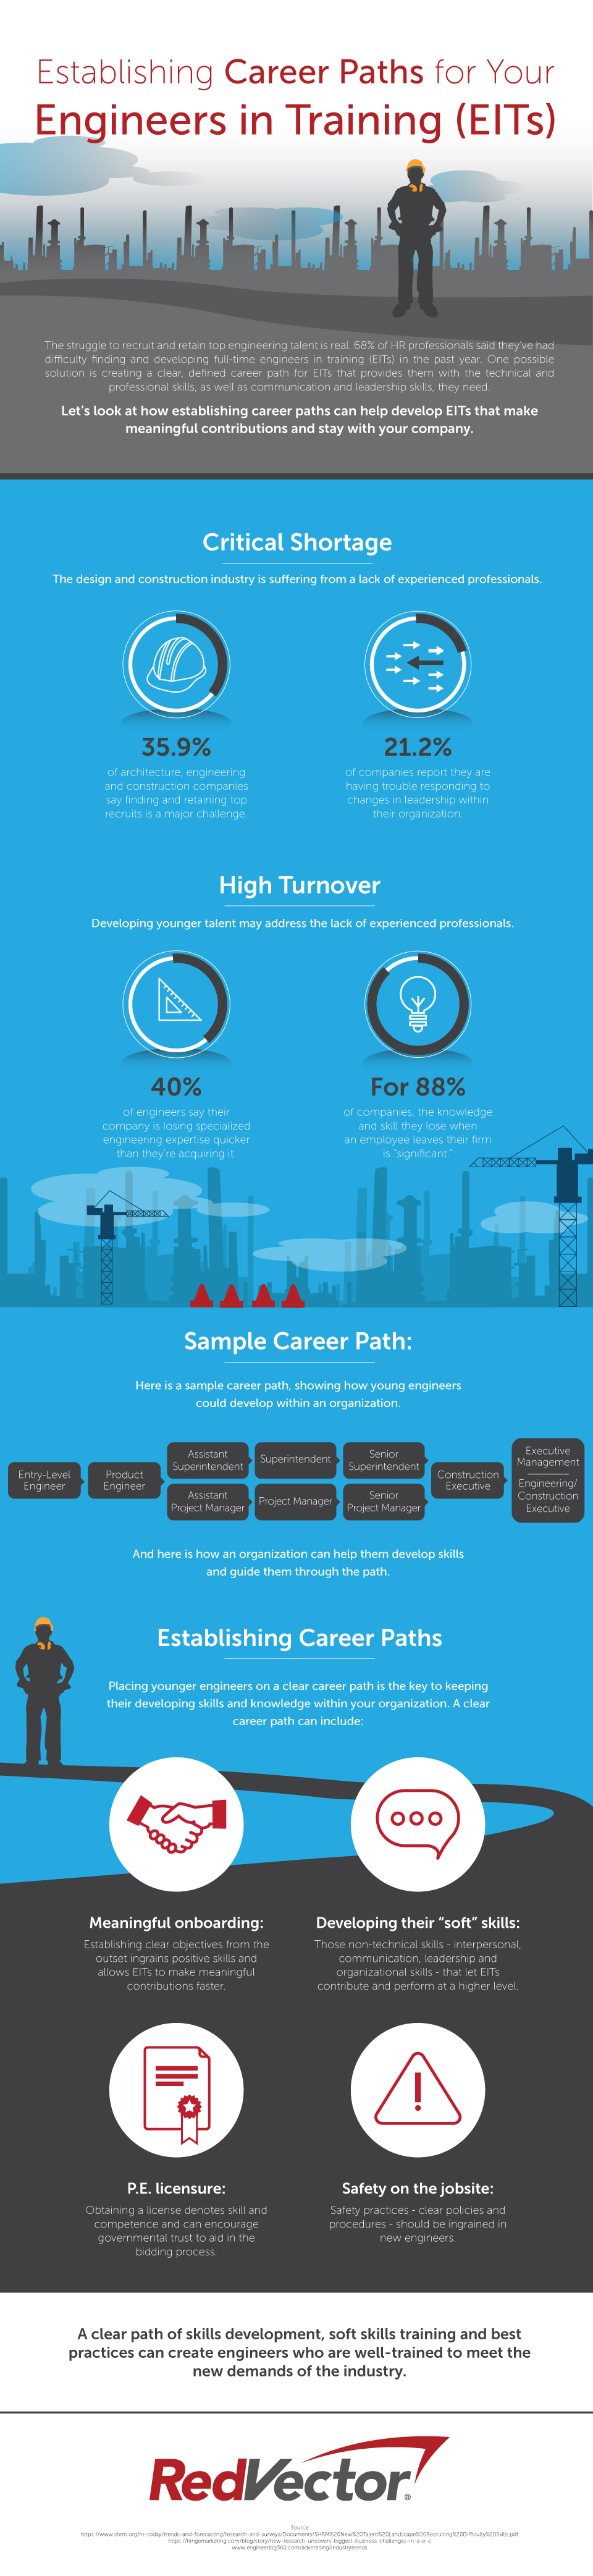 Establishing Career Paths for Your Engineers in Training (EITs)